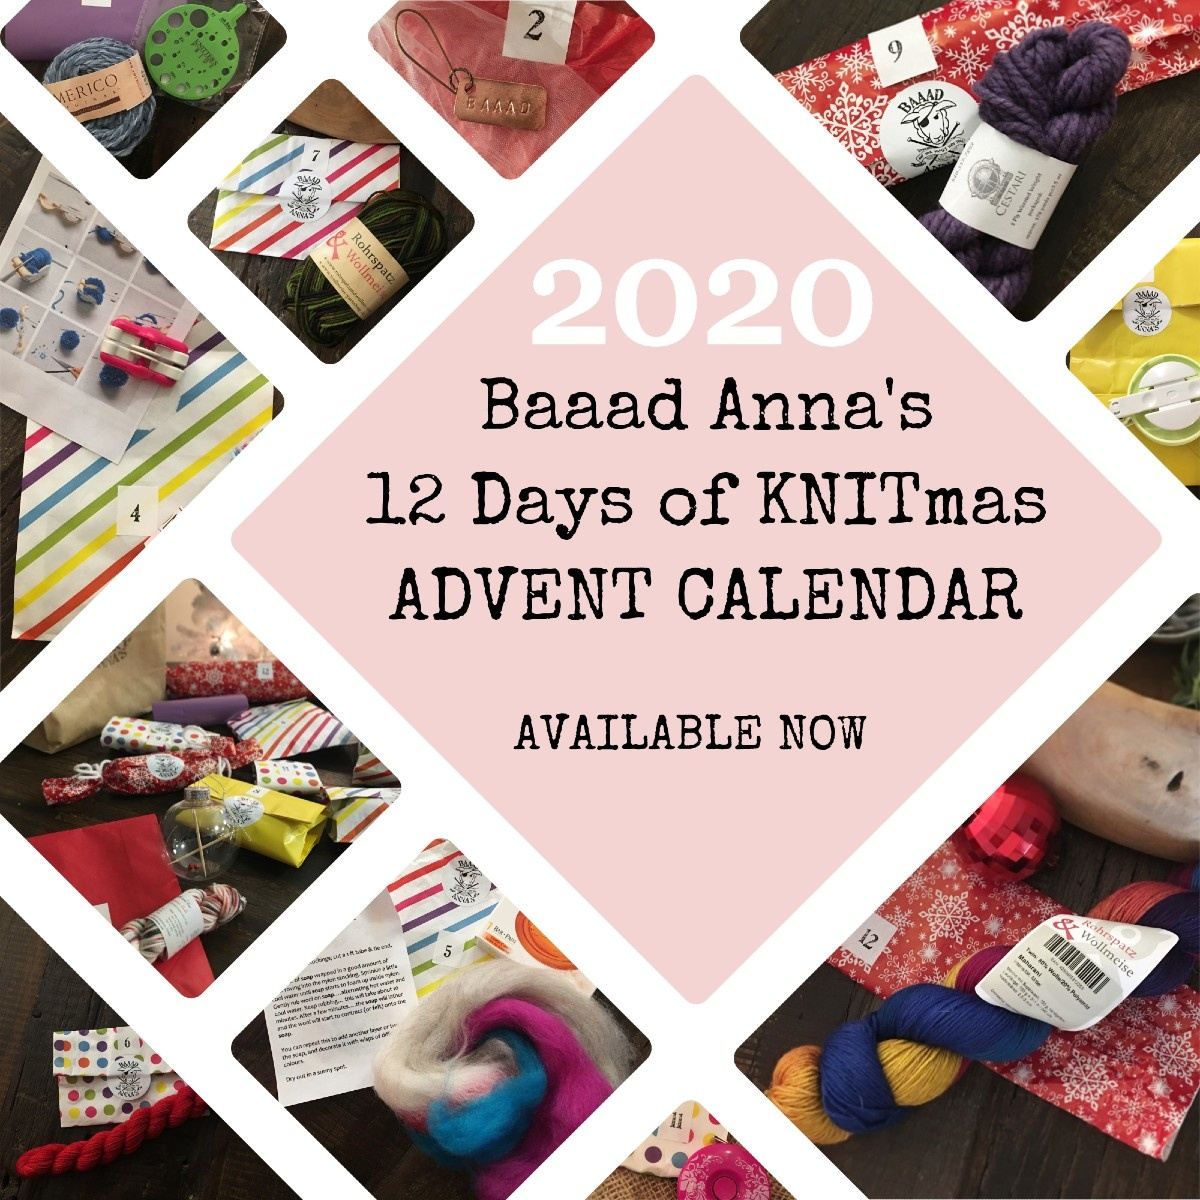 Baaad Anna's 12 Days of Knitmas 2020